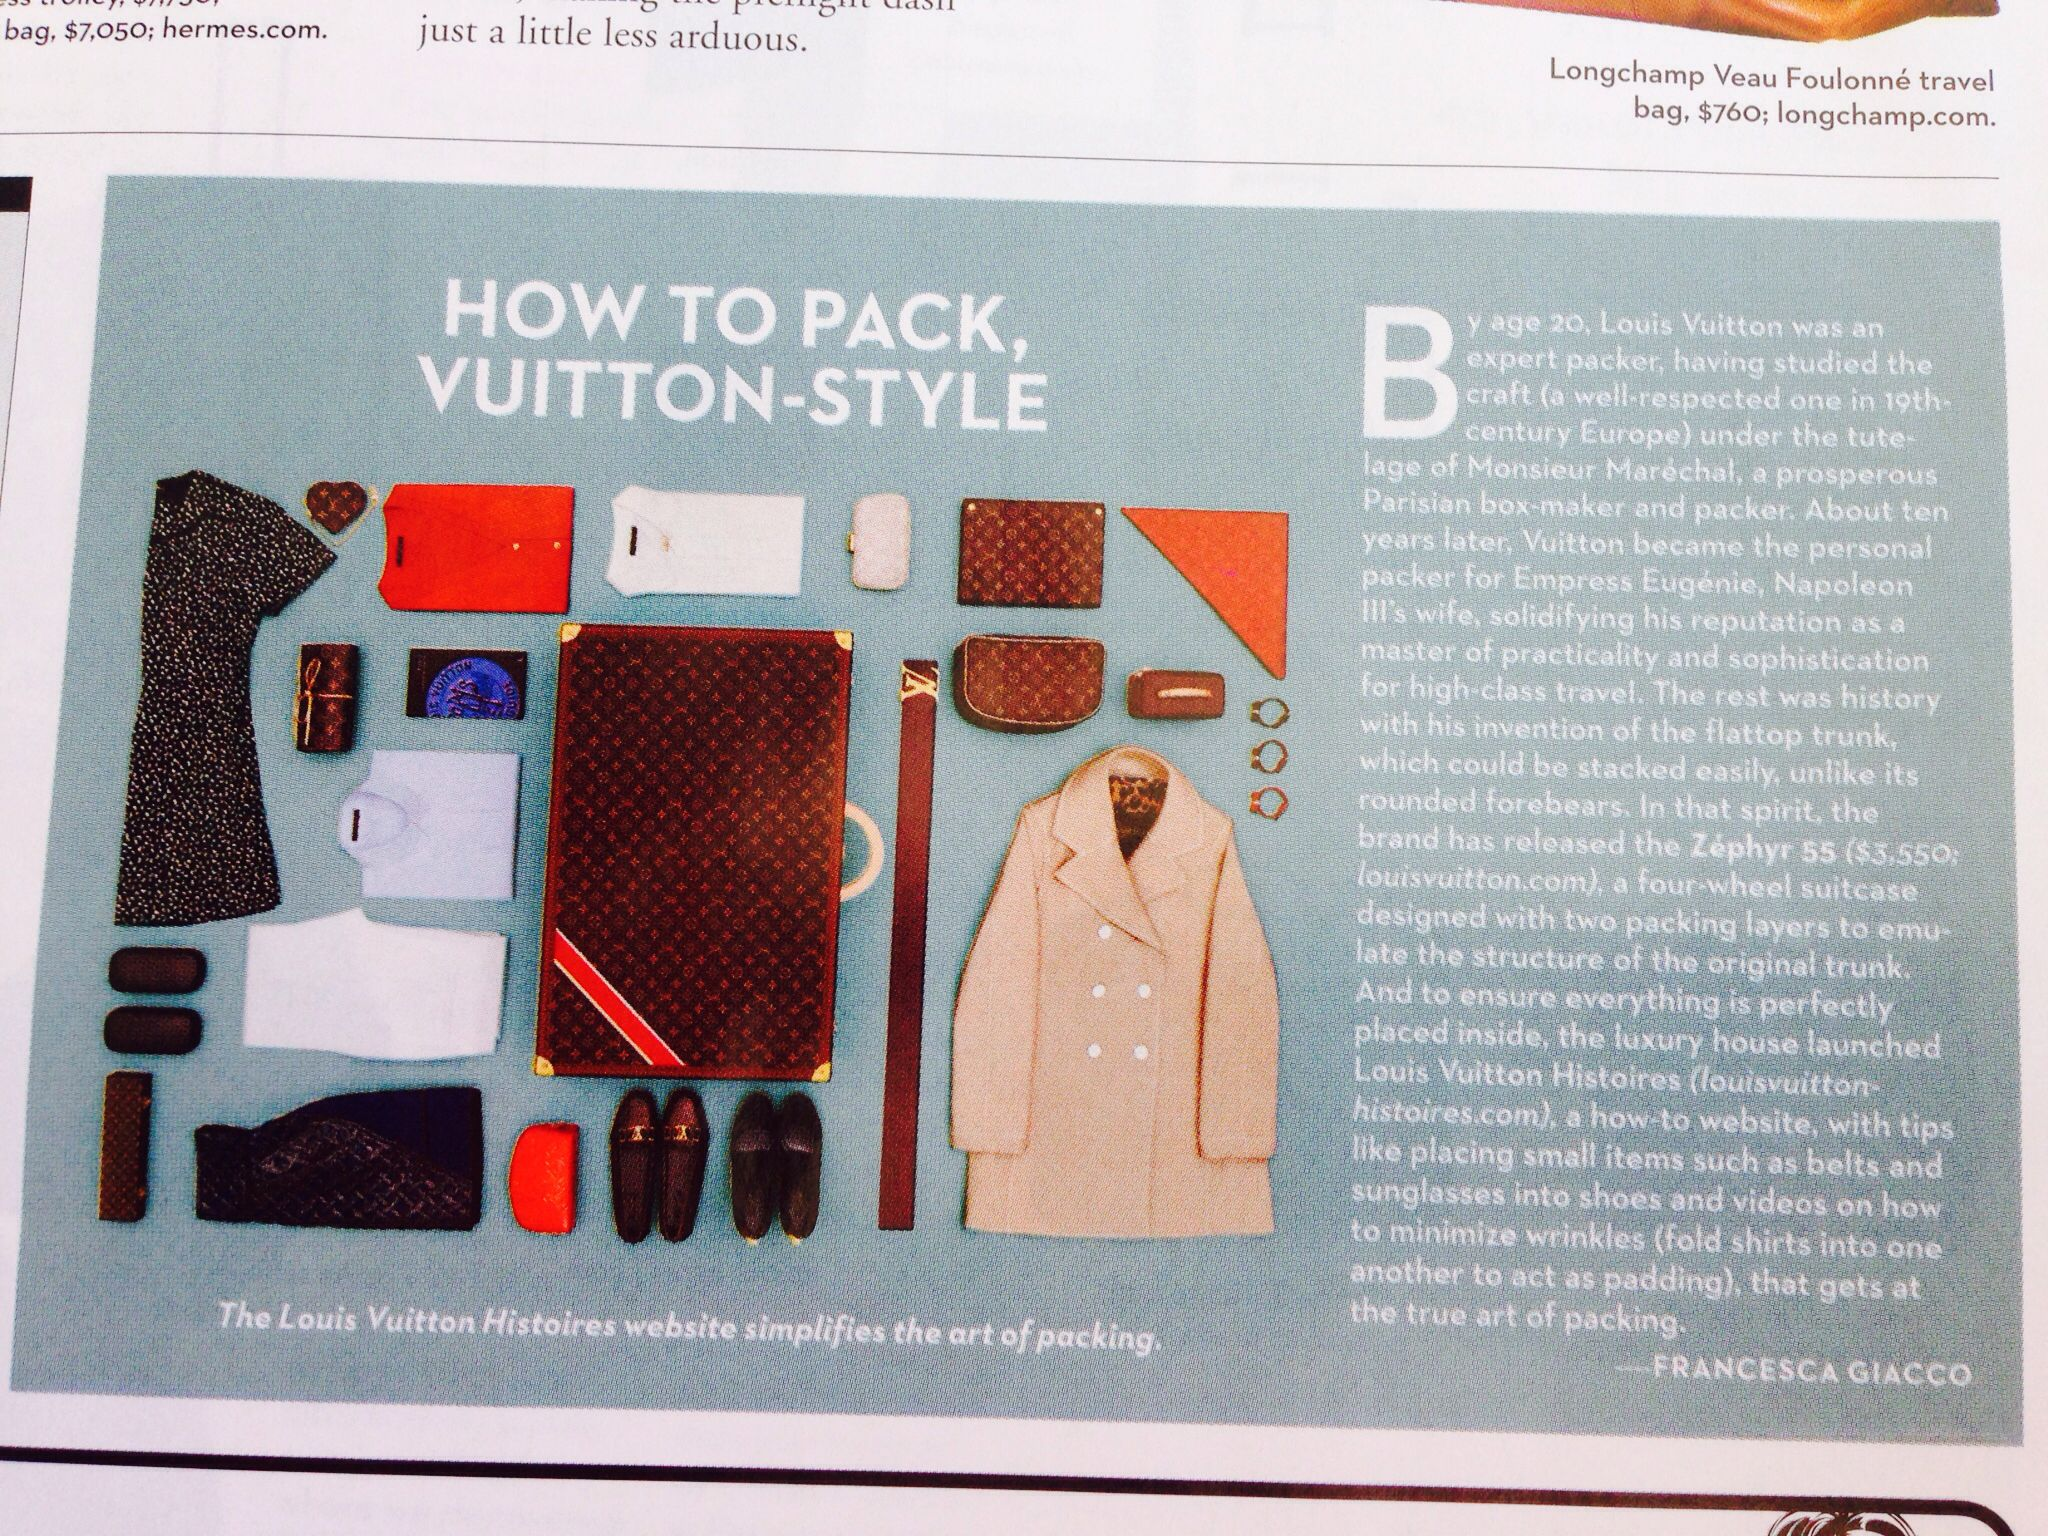 Packing tips.